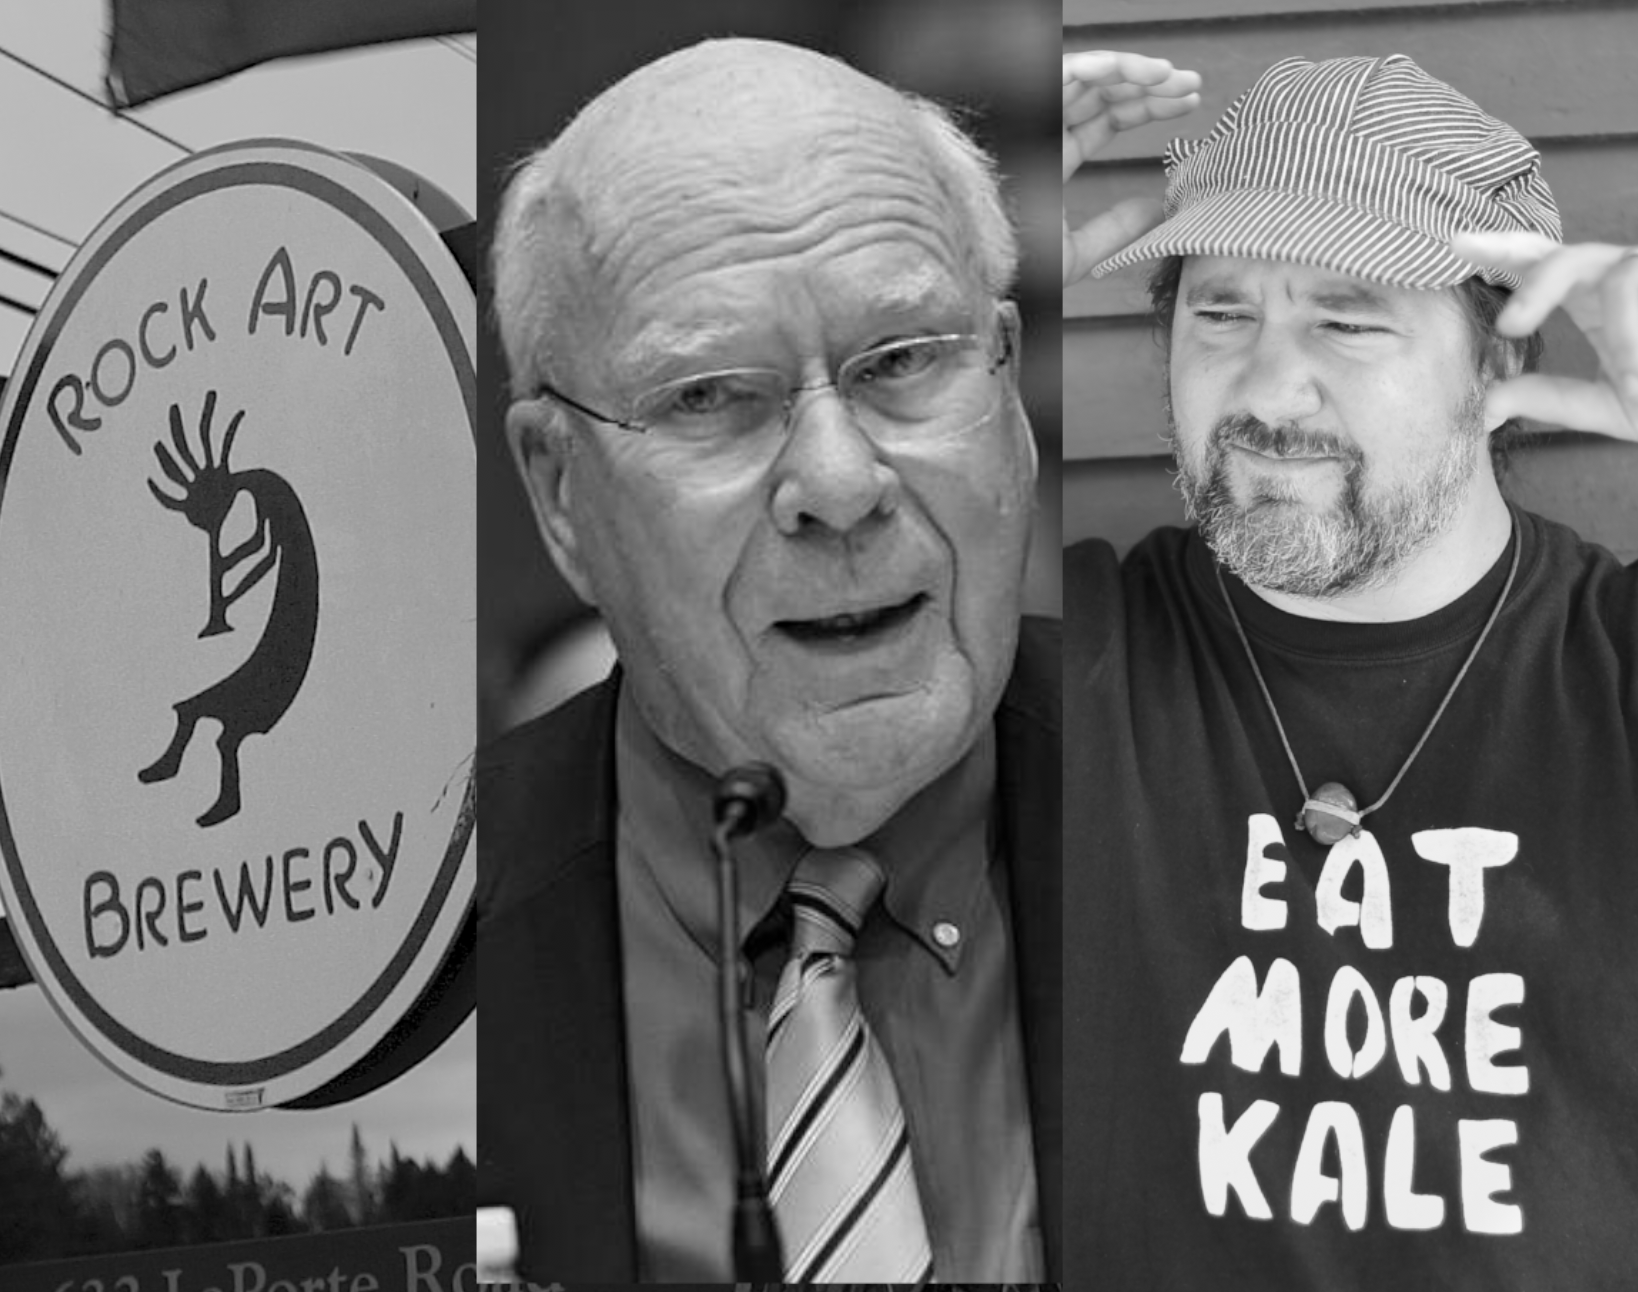 The story began with two high-profile Vermont cases that became nationally known as Trademark Bullying. Sen Patrick Leahy got involved.